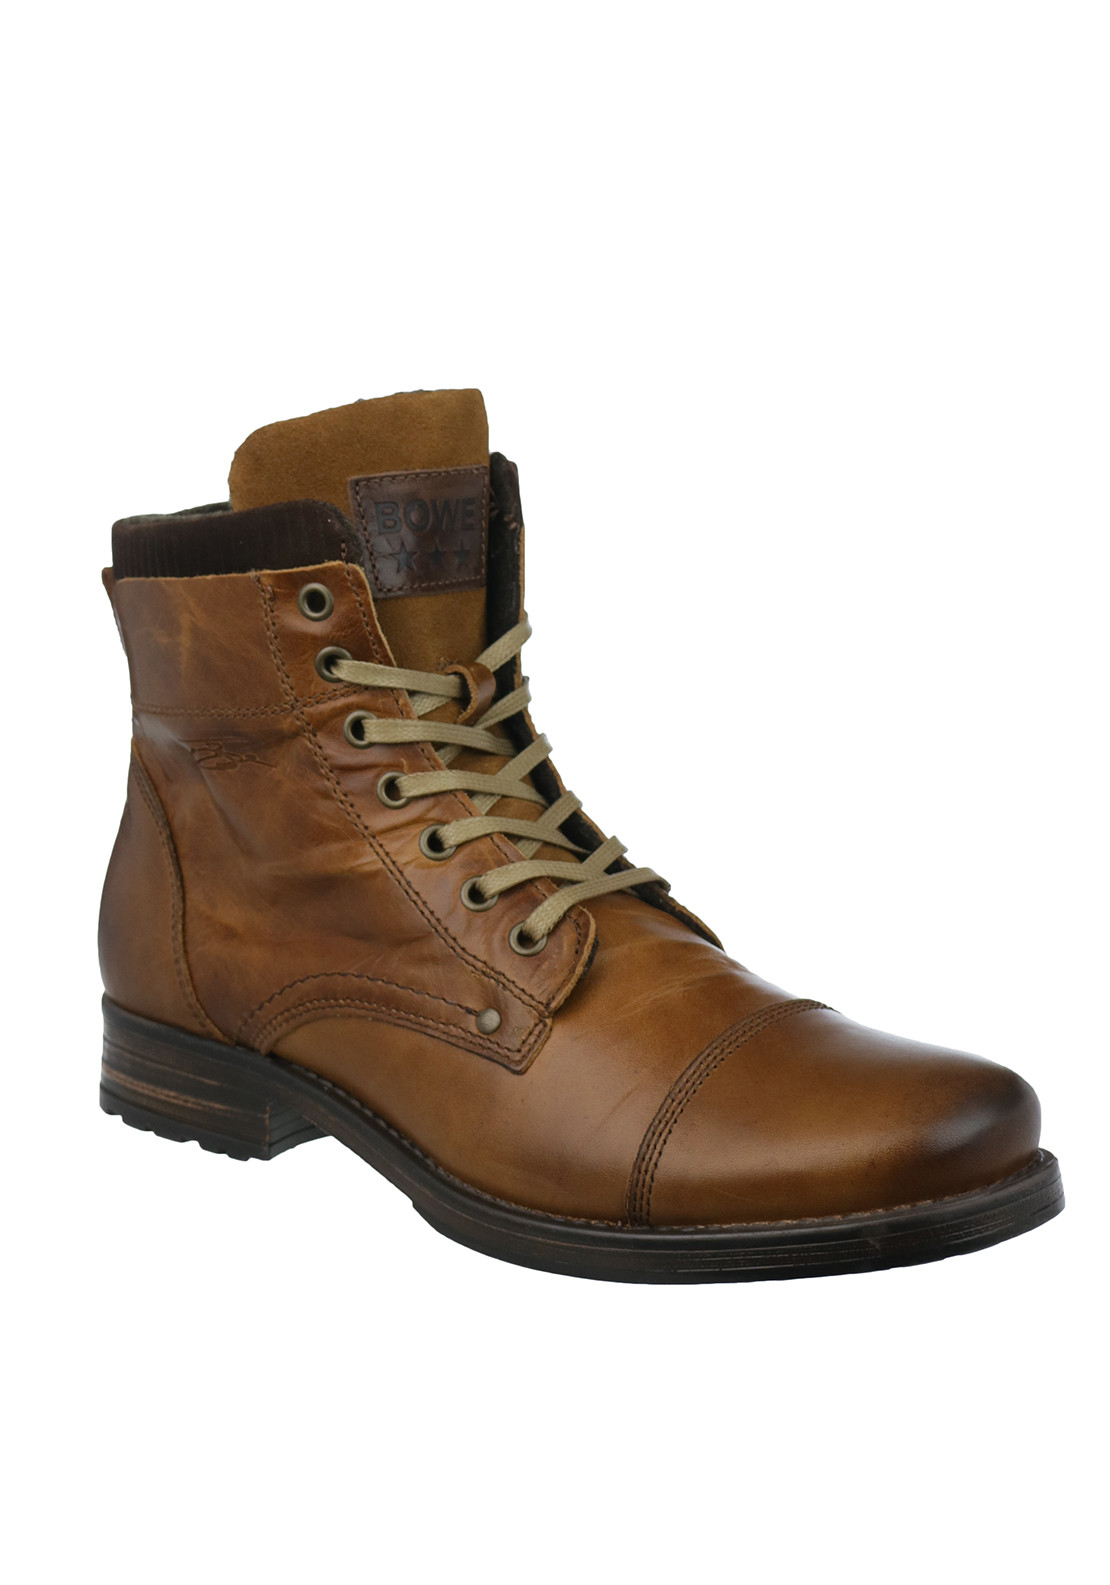 Tommy Bowe Denton Leather Boots, Tan